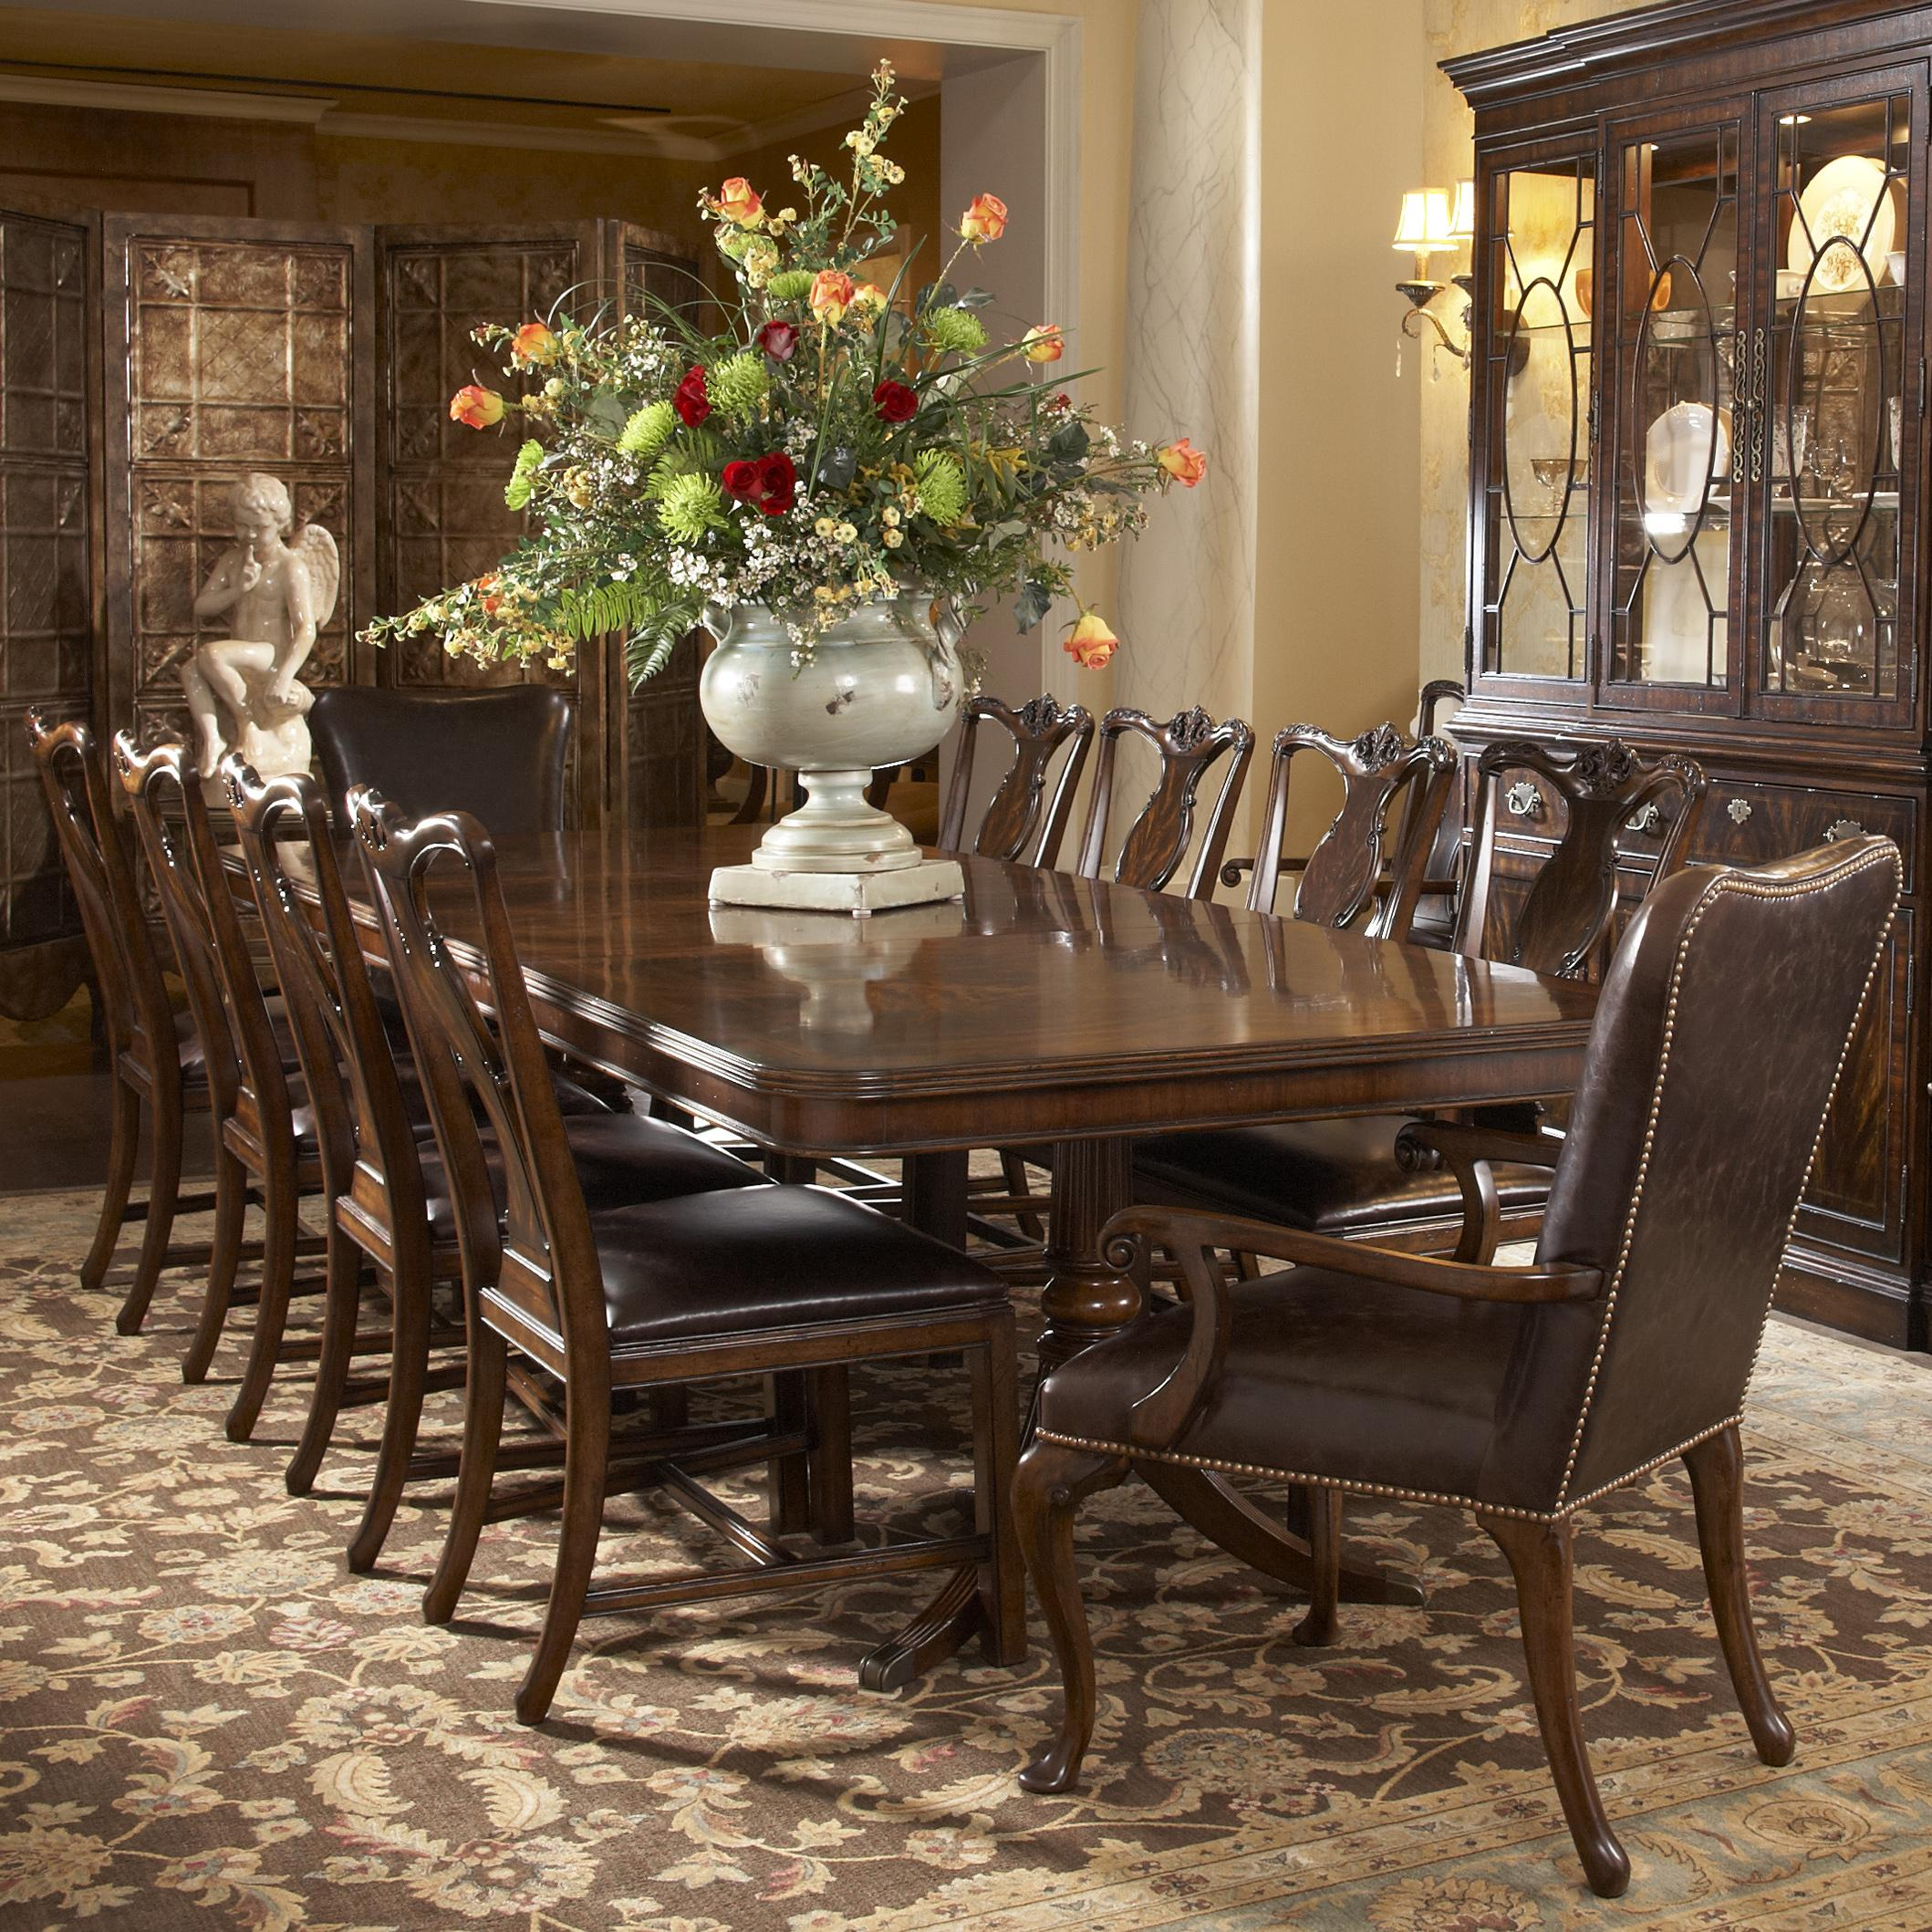 11 Piece Dining Table And Chair Set